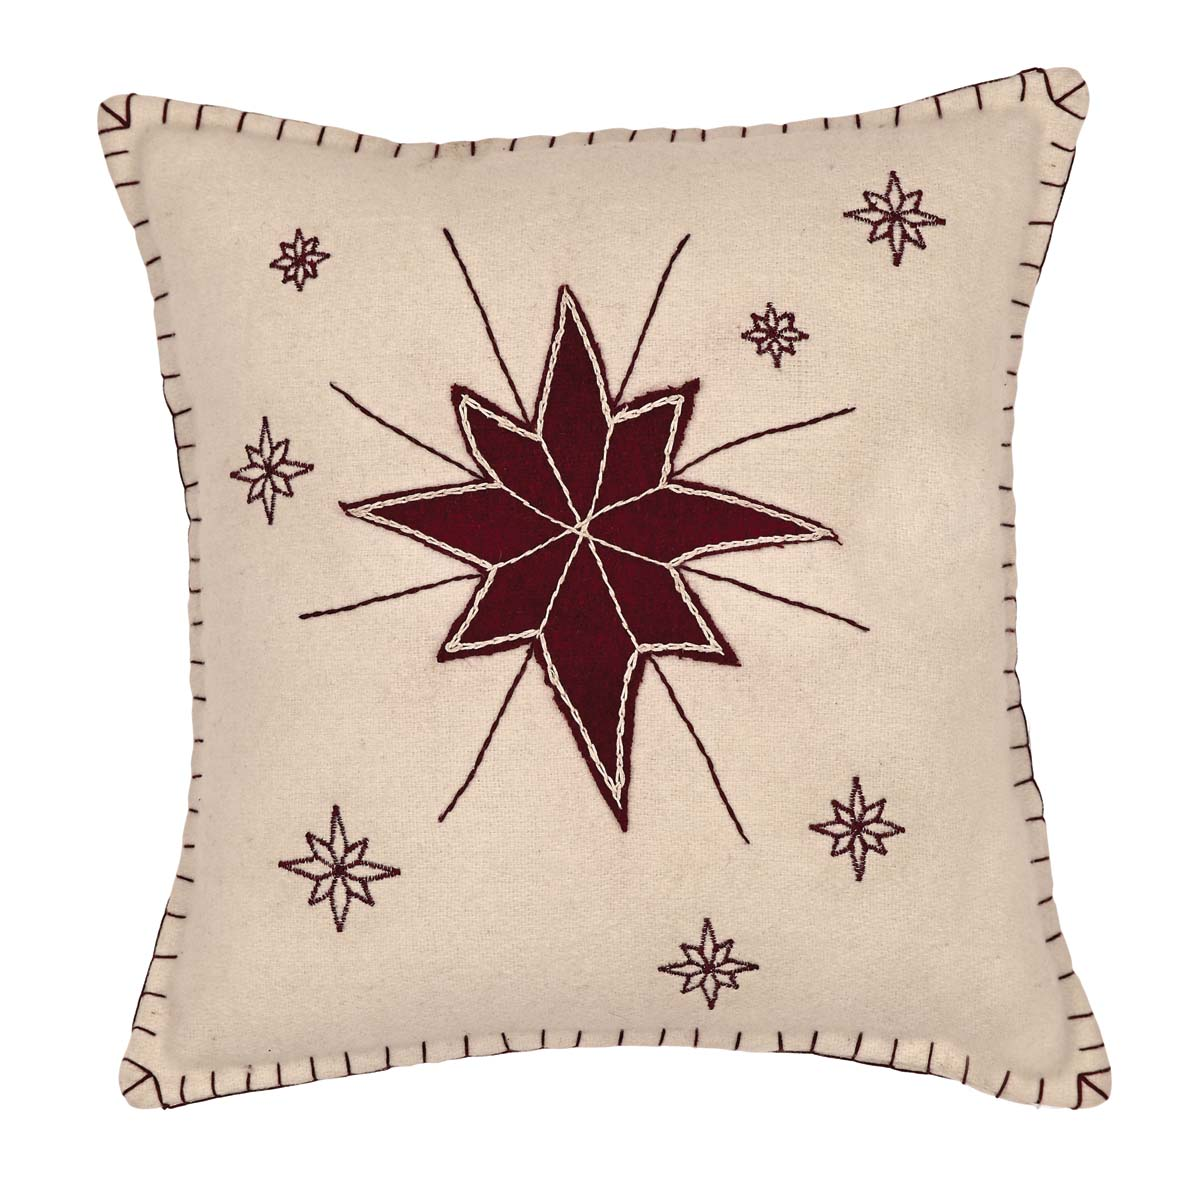 North Star Pillow 16x16 - Allysons Place